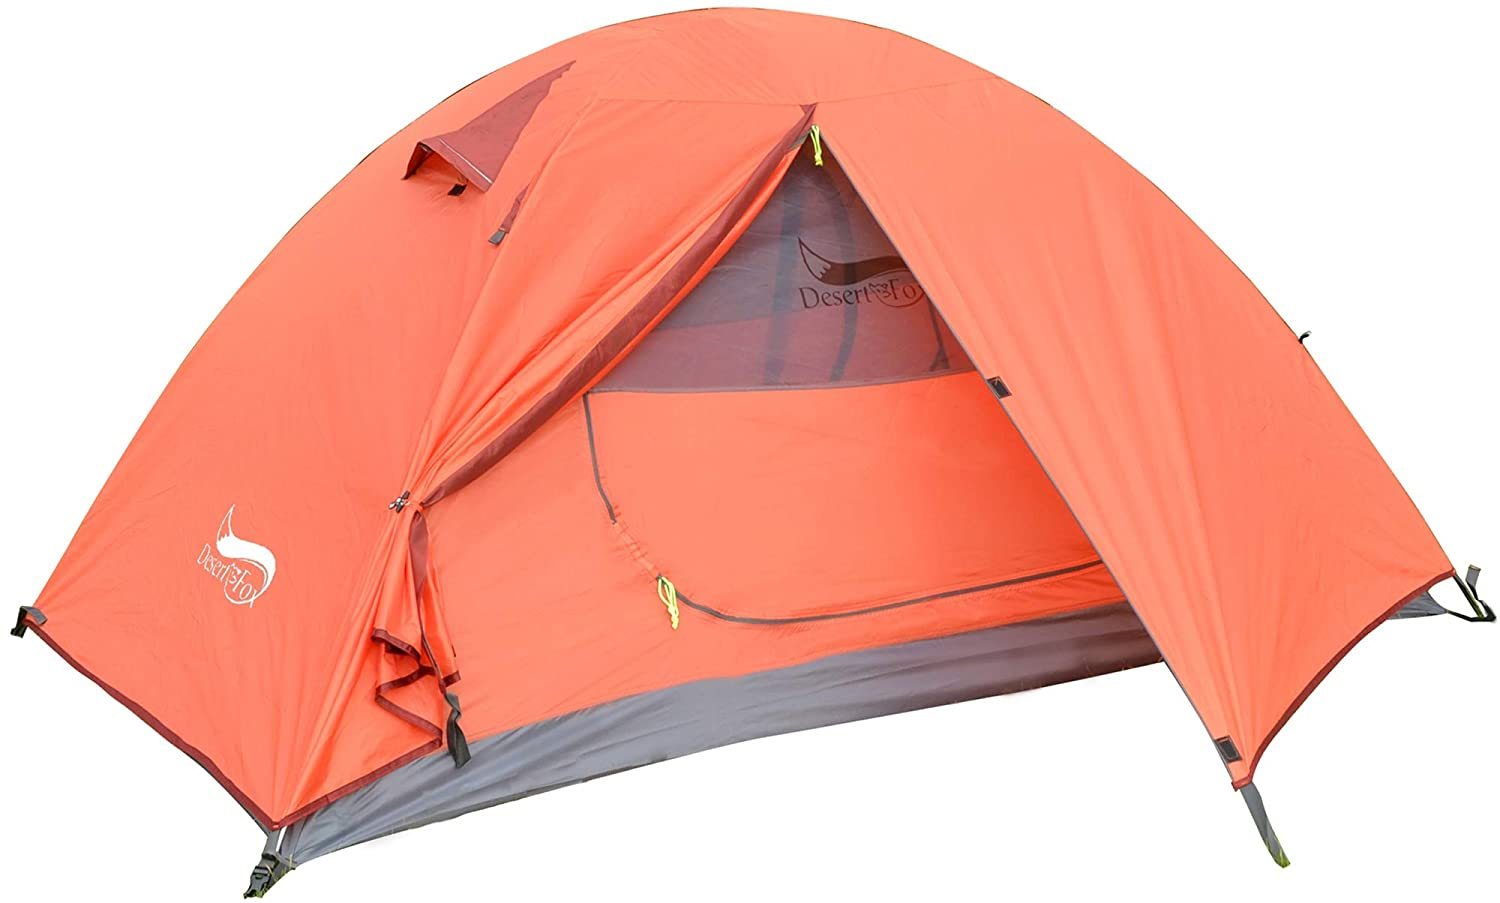 DESERT & FOX Backpacking Camping Tent